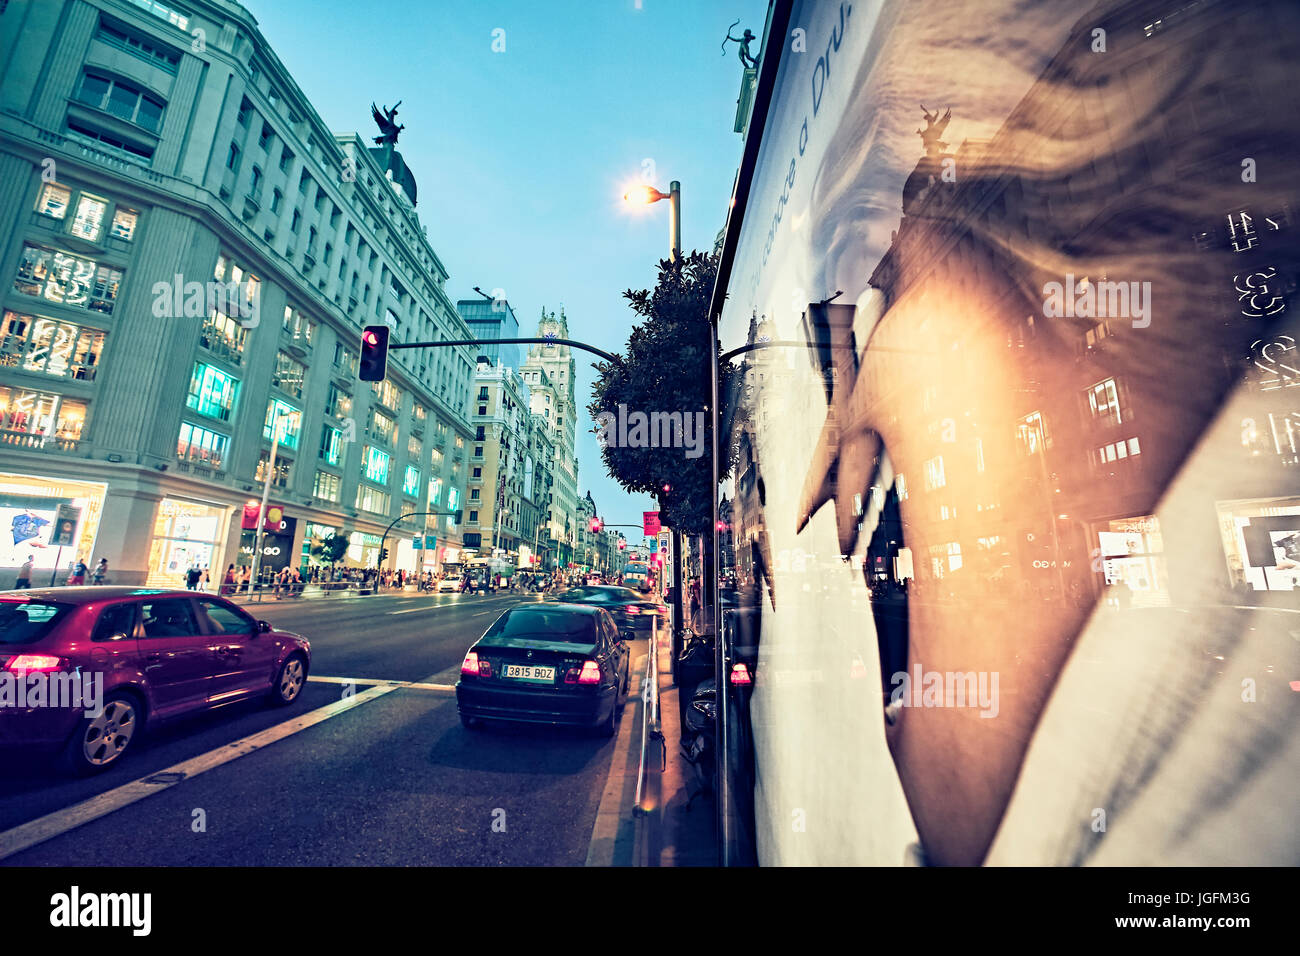 Reflection on a window shop poster in Gran Via Avenue. Madrid. Spain - Stock Image